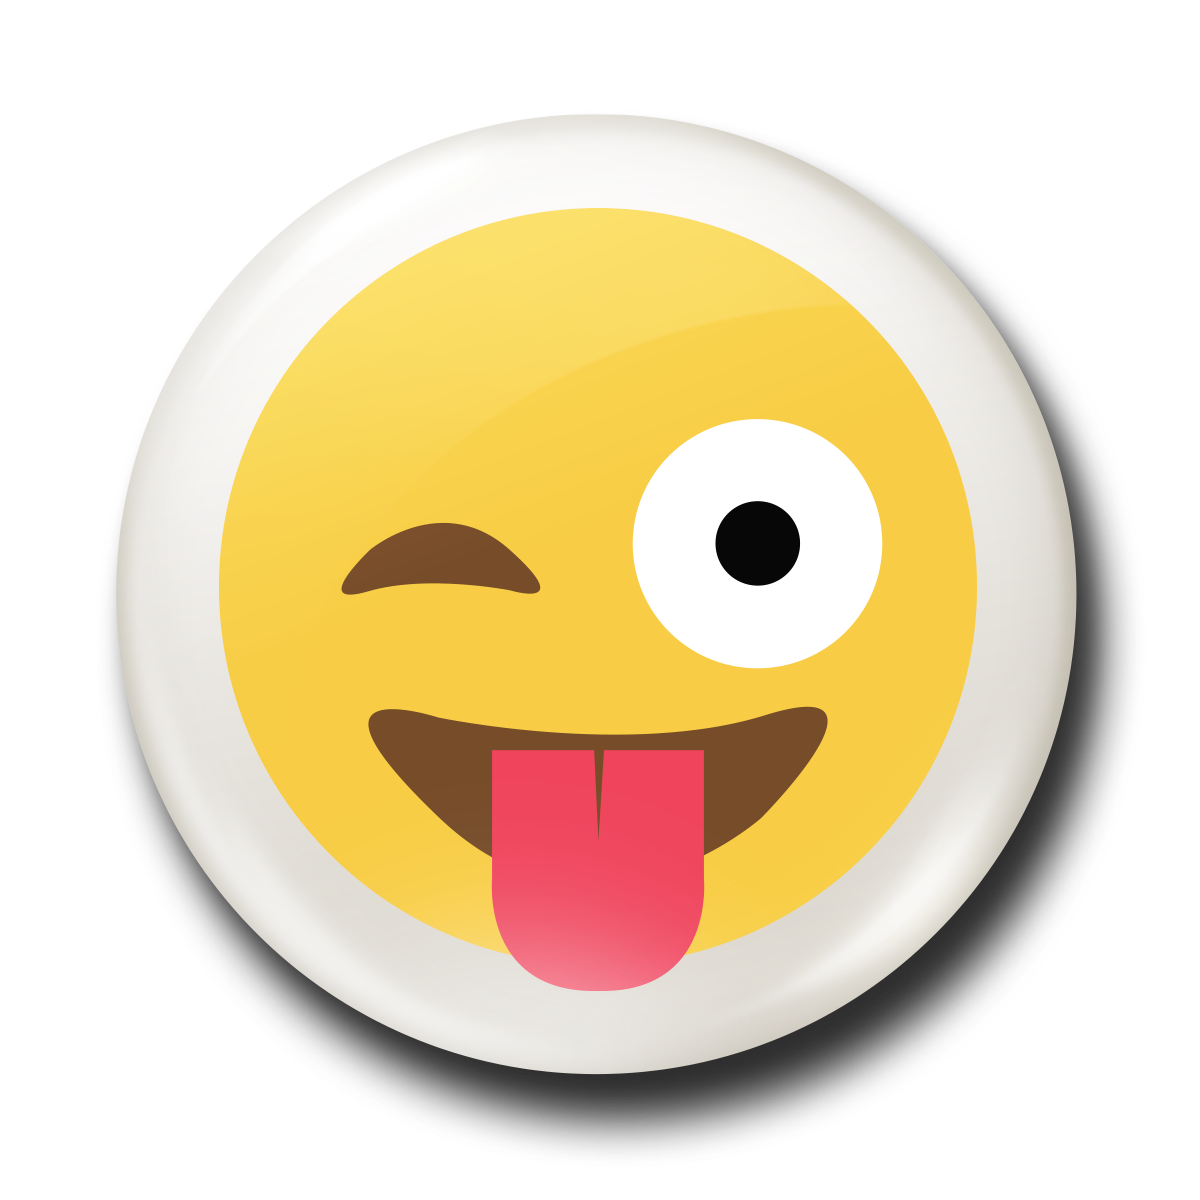 Emoji clipart tongue. Stick out the badge